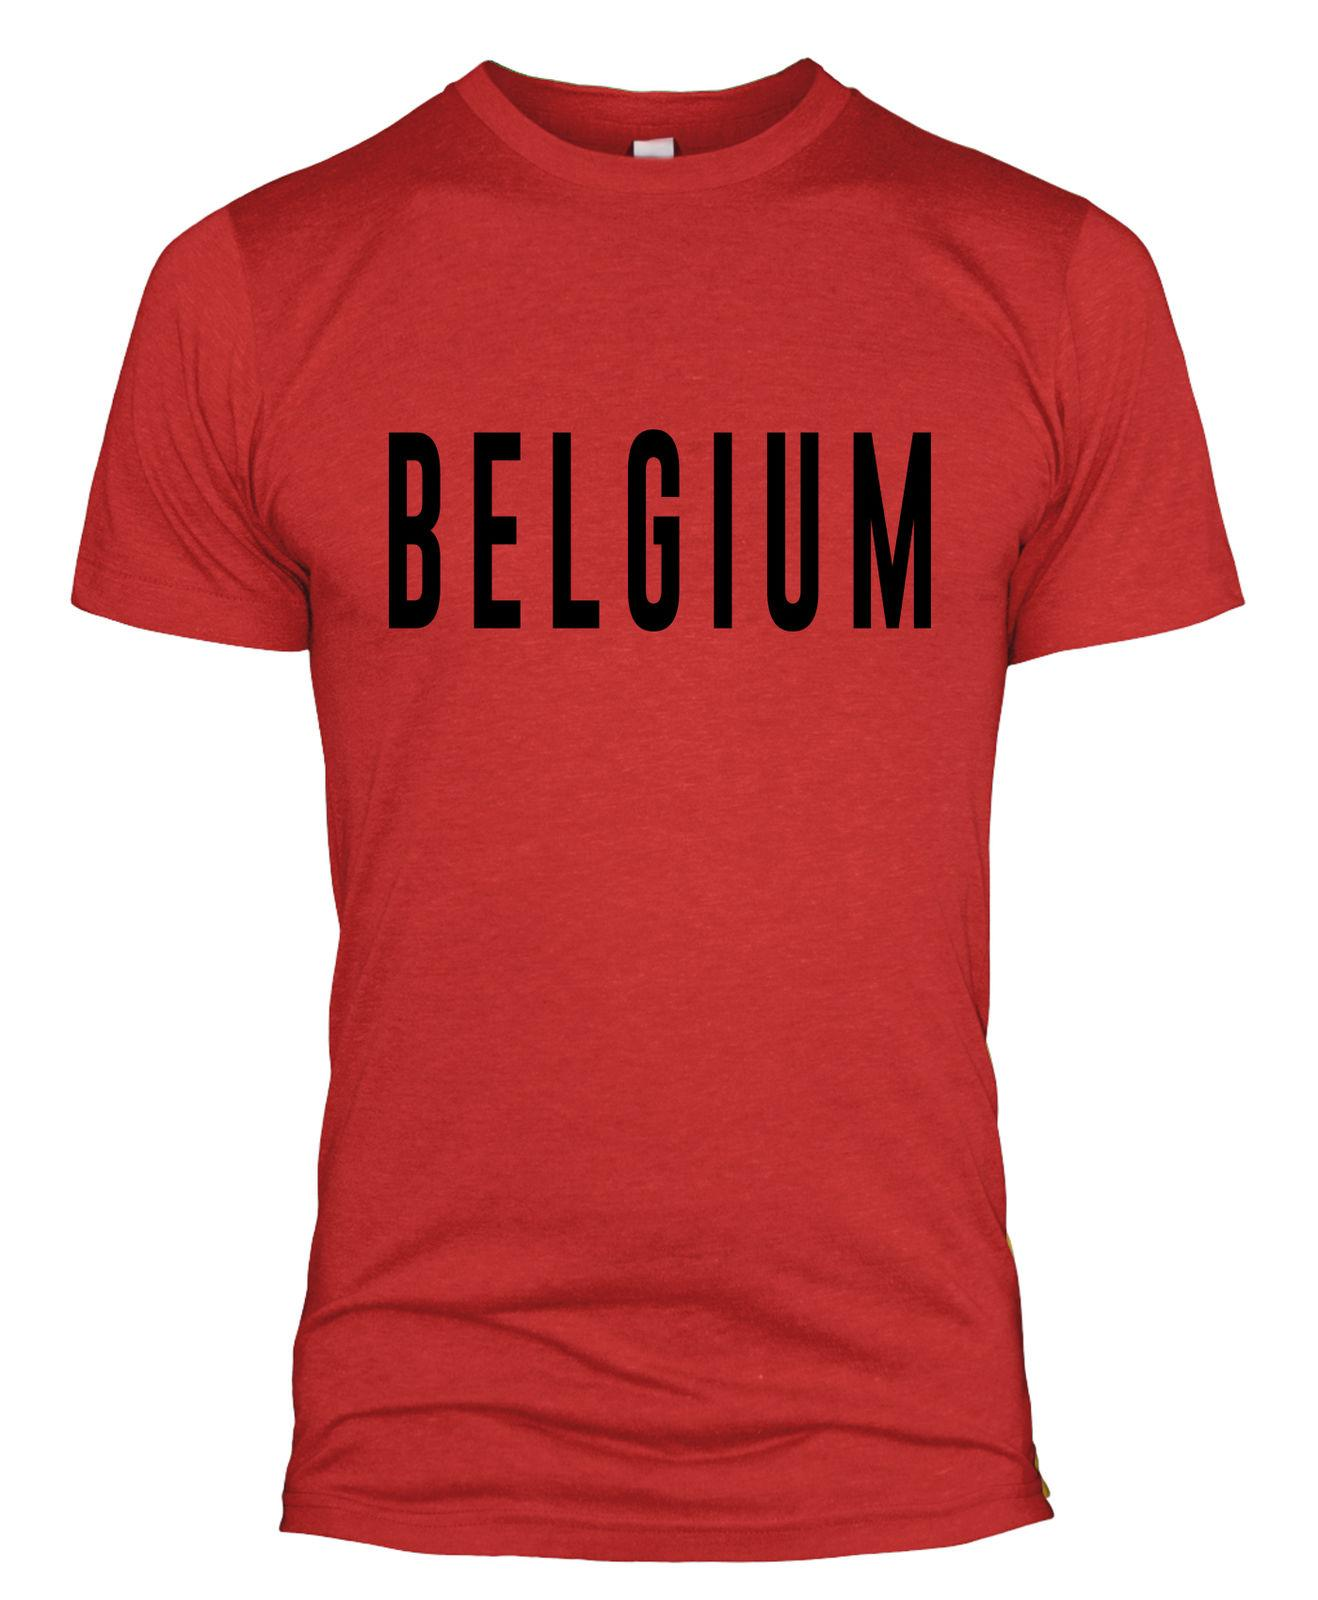 Belgium Text Retro T Shirt Russia World Cup 2018 Football Supporter Top Men  L254 Cool Casual Pride T Shirt Men Unisex New Fashion Tshirt Offensive T  Shirts ... 36ded827c